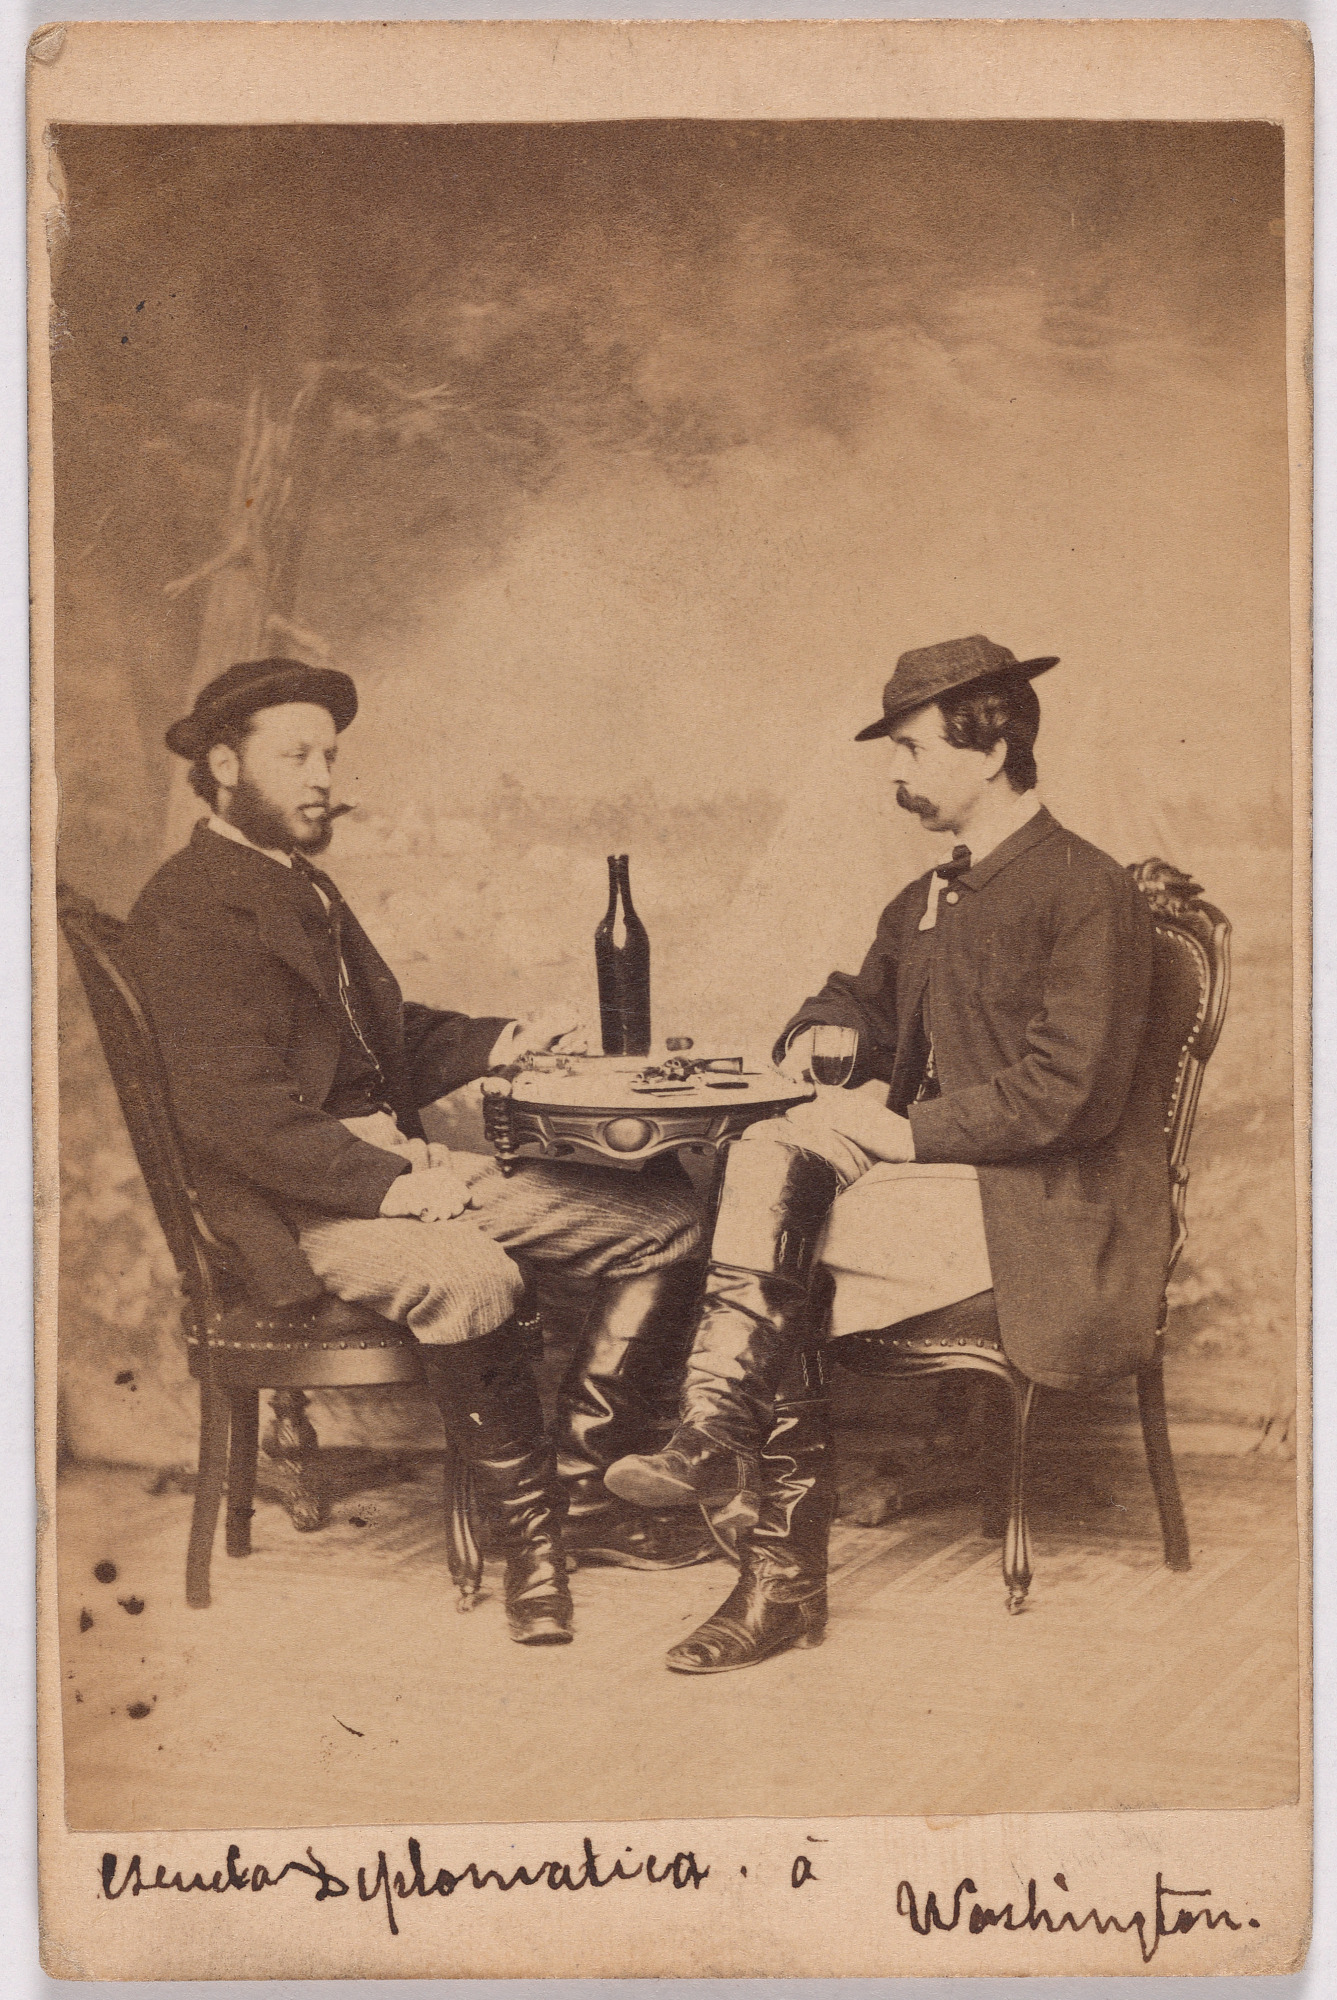 Two war photographers (or correspondents)